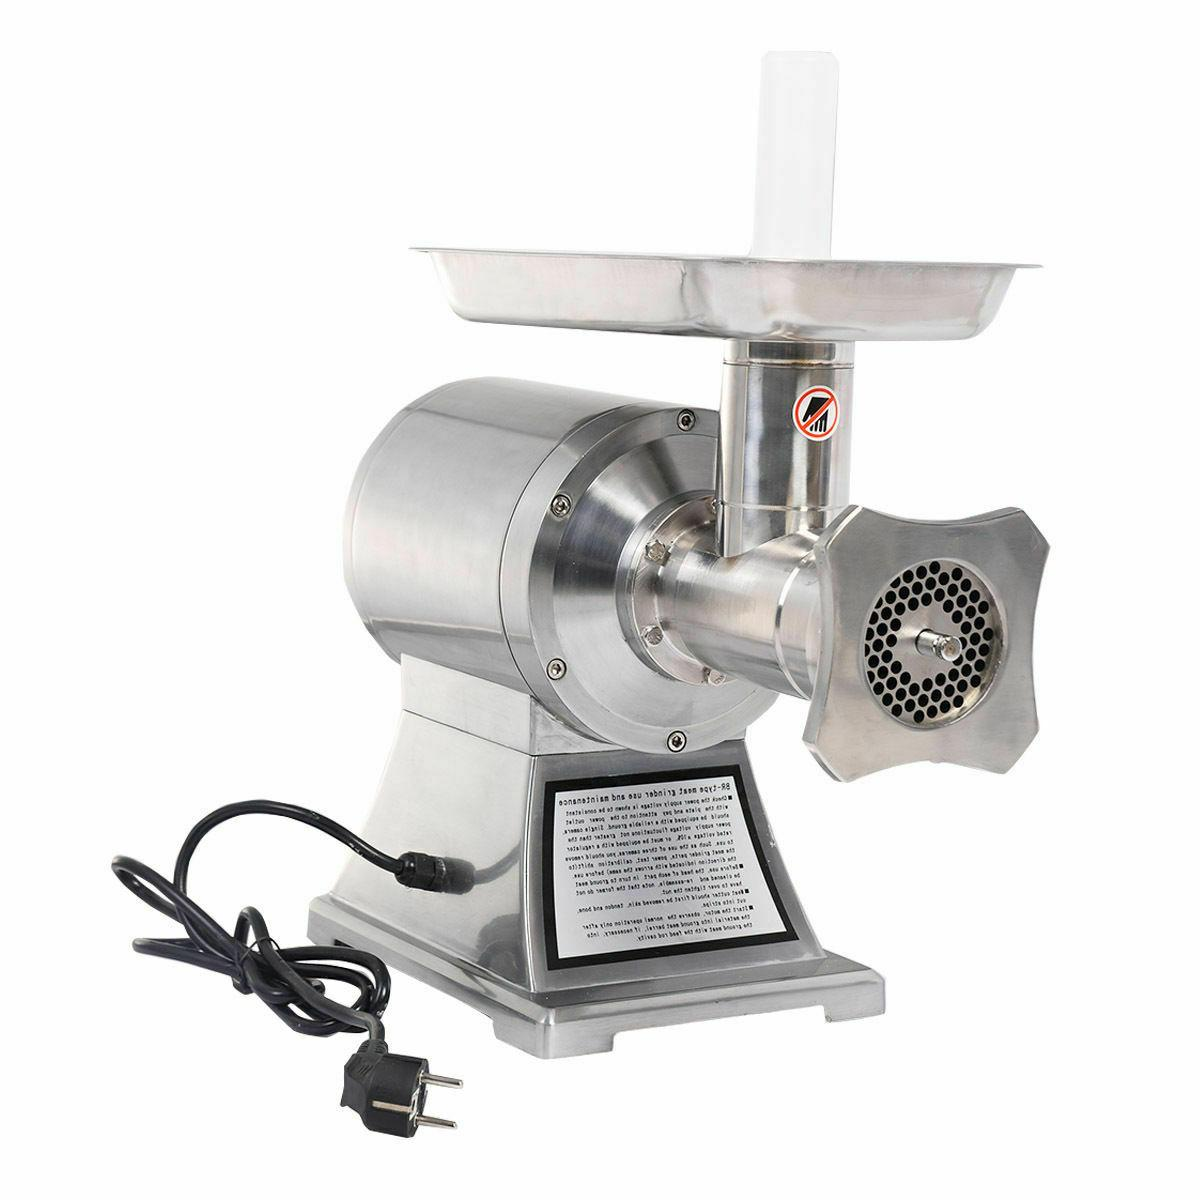 New Stainless True 1HP Electric Grinder No #12